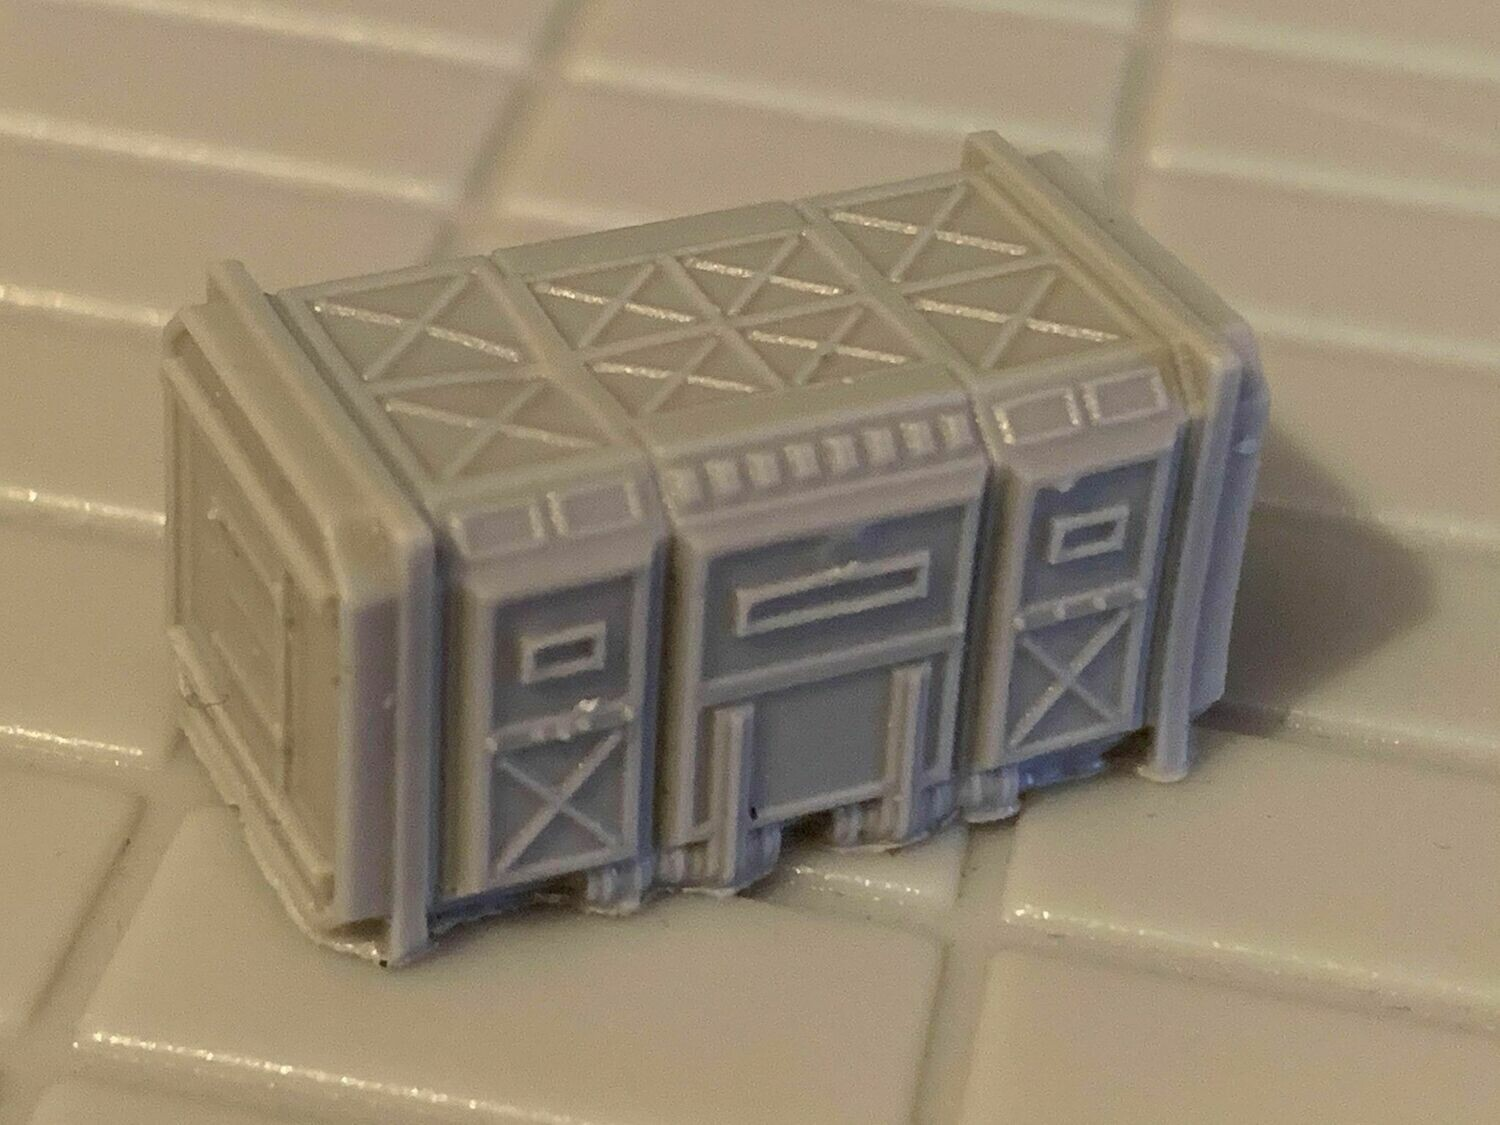 6-8mm Epically Scaled Container for Scenery or Goliath x 1